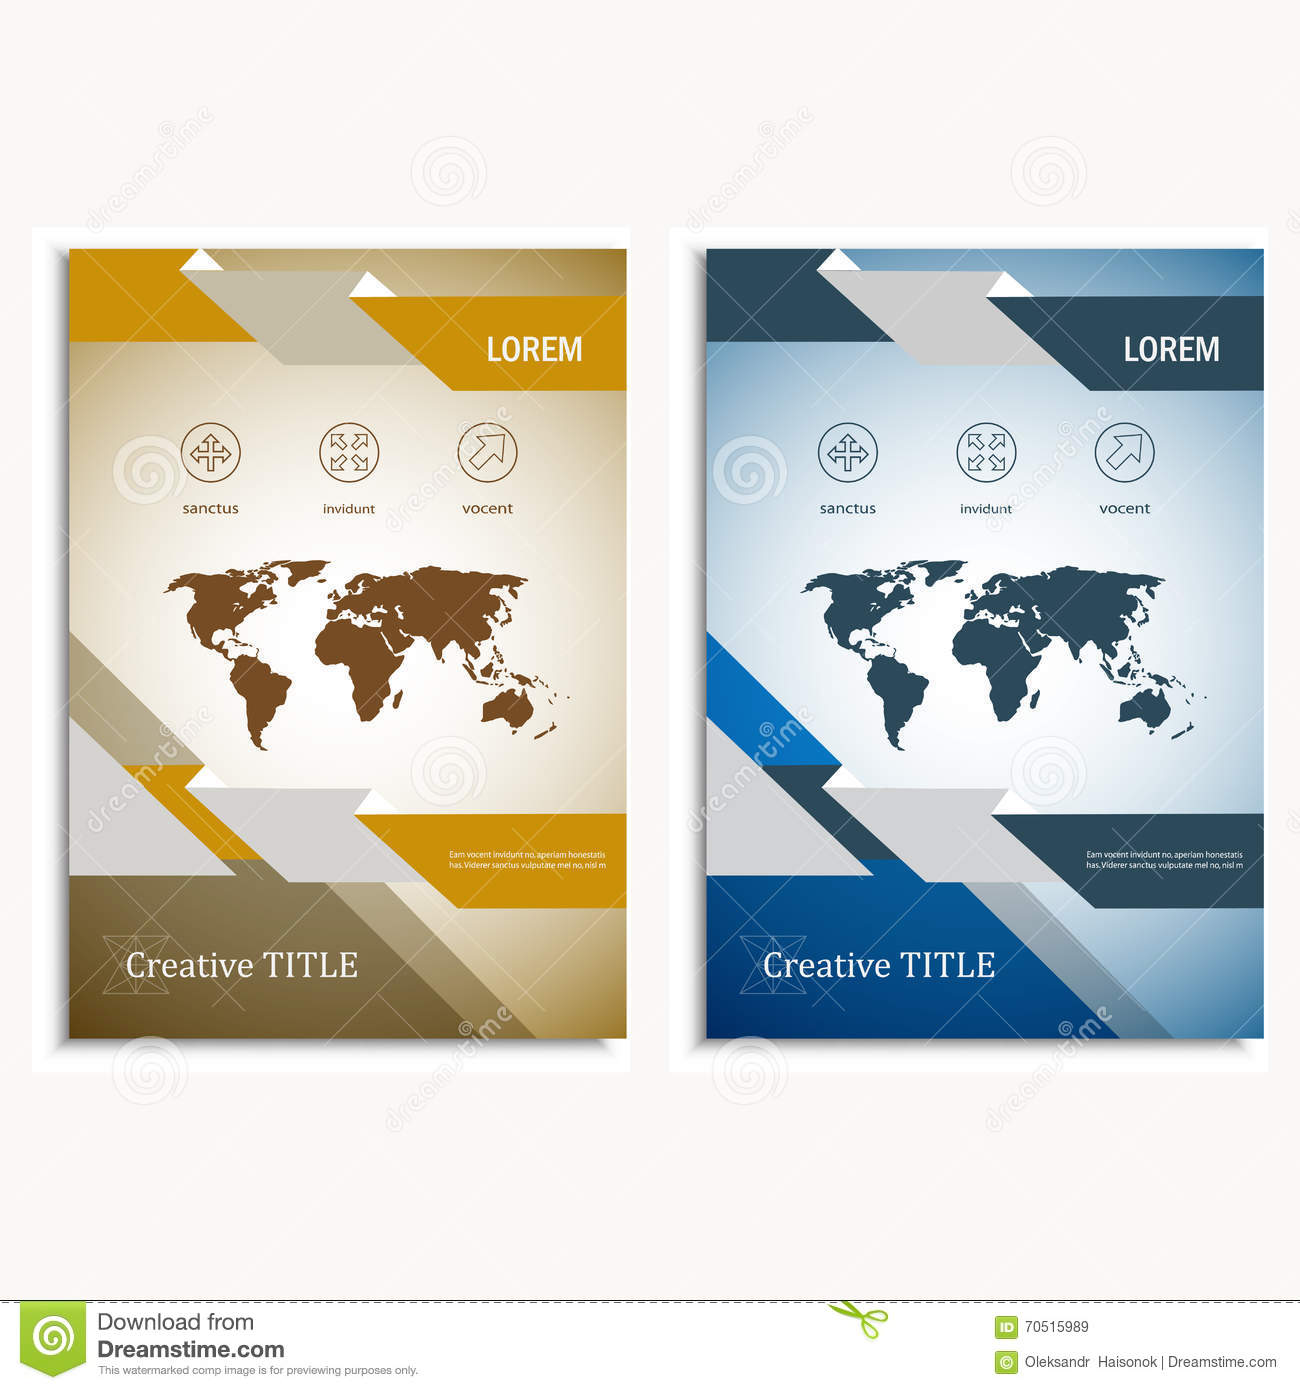 Annual Report Brochure Flyer Design Template Vector, Map Design, Cover  Template  Annual Report Cover Template